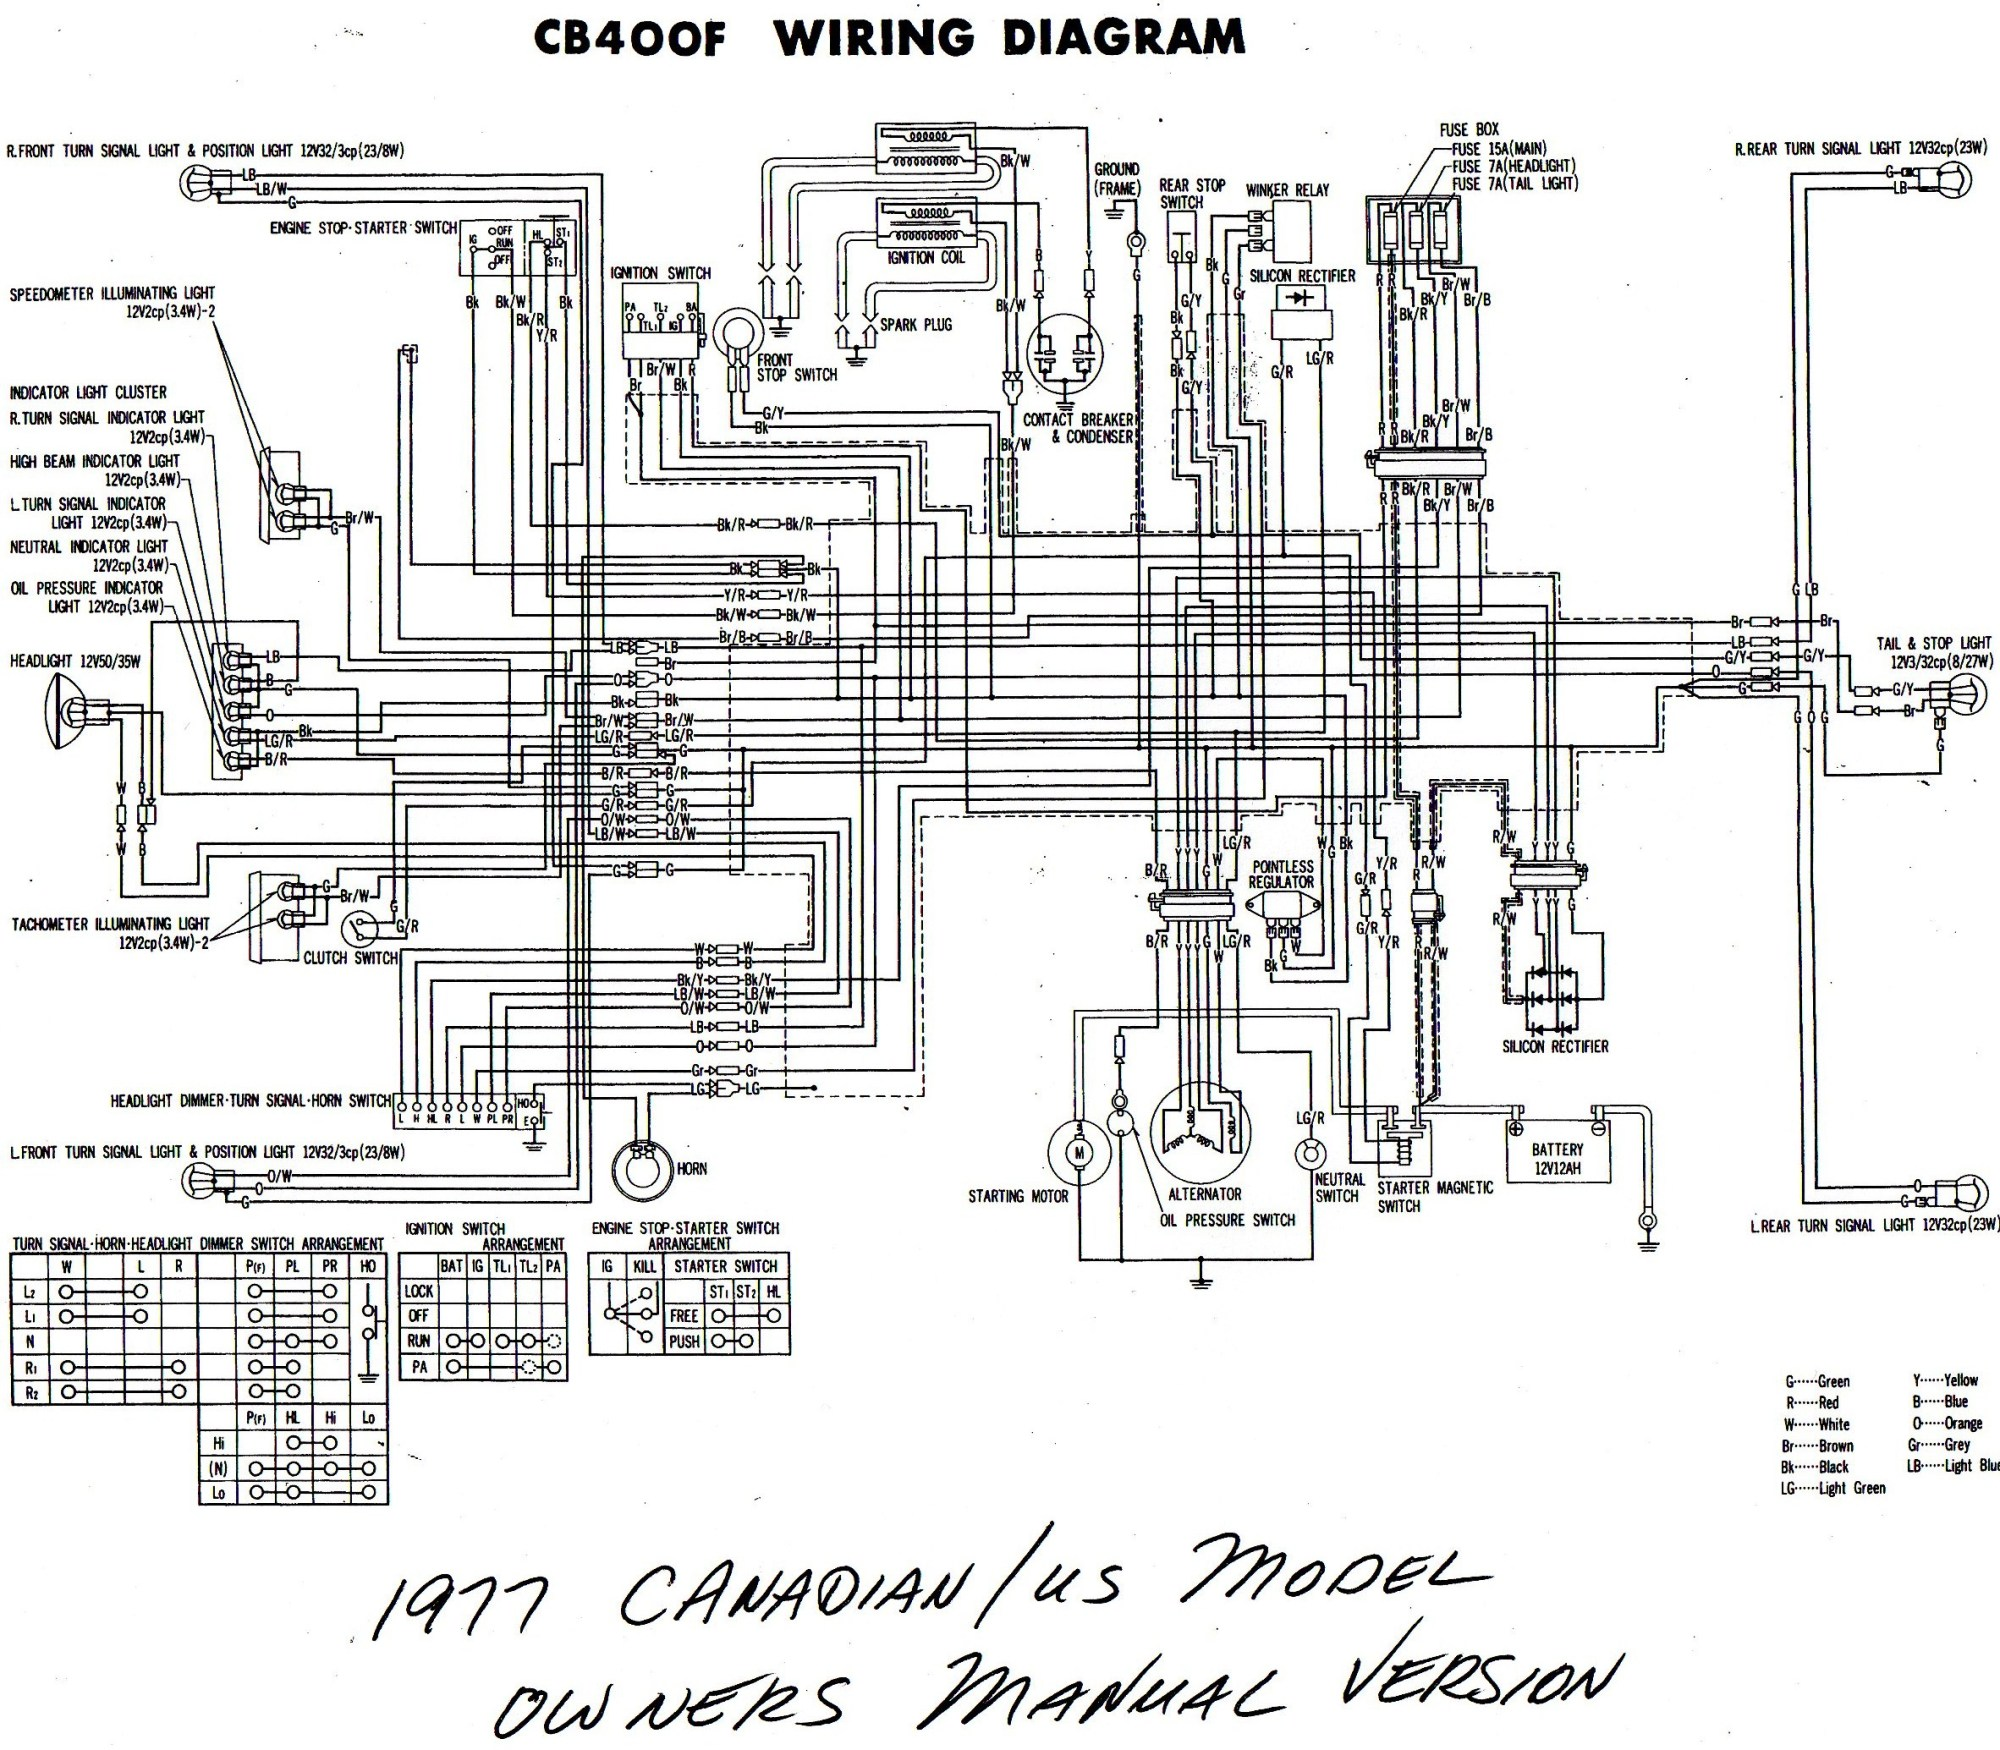 hight resolution of cb500 wiring diagram wiring diagram cb500 wiring diagram